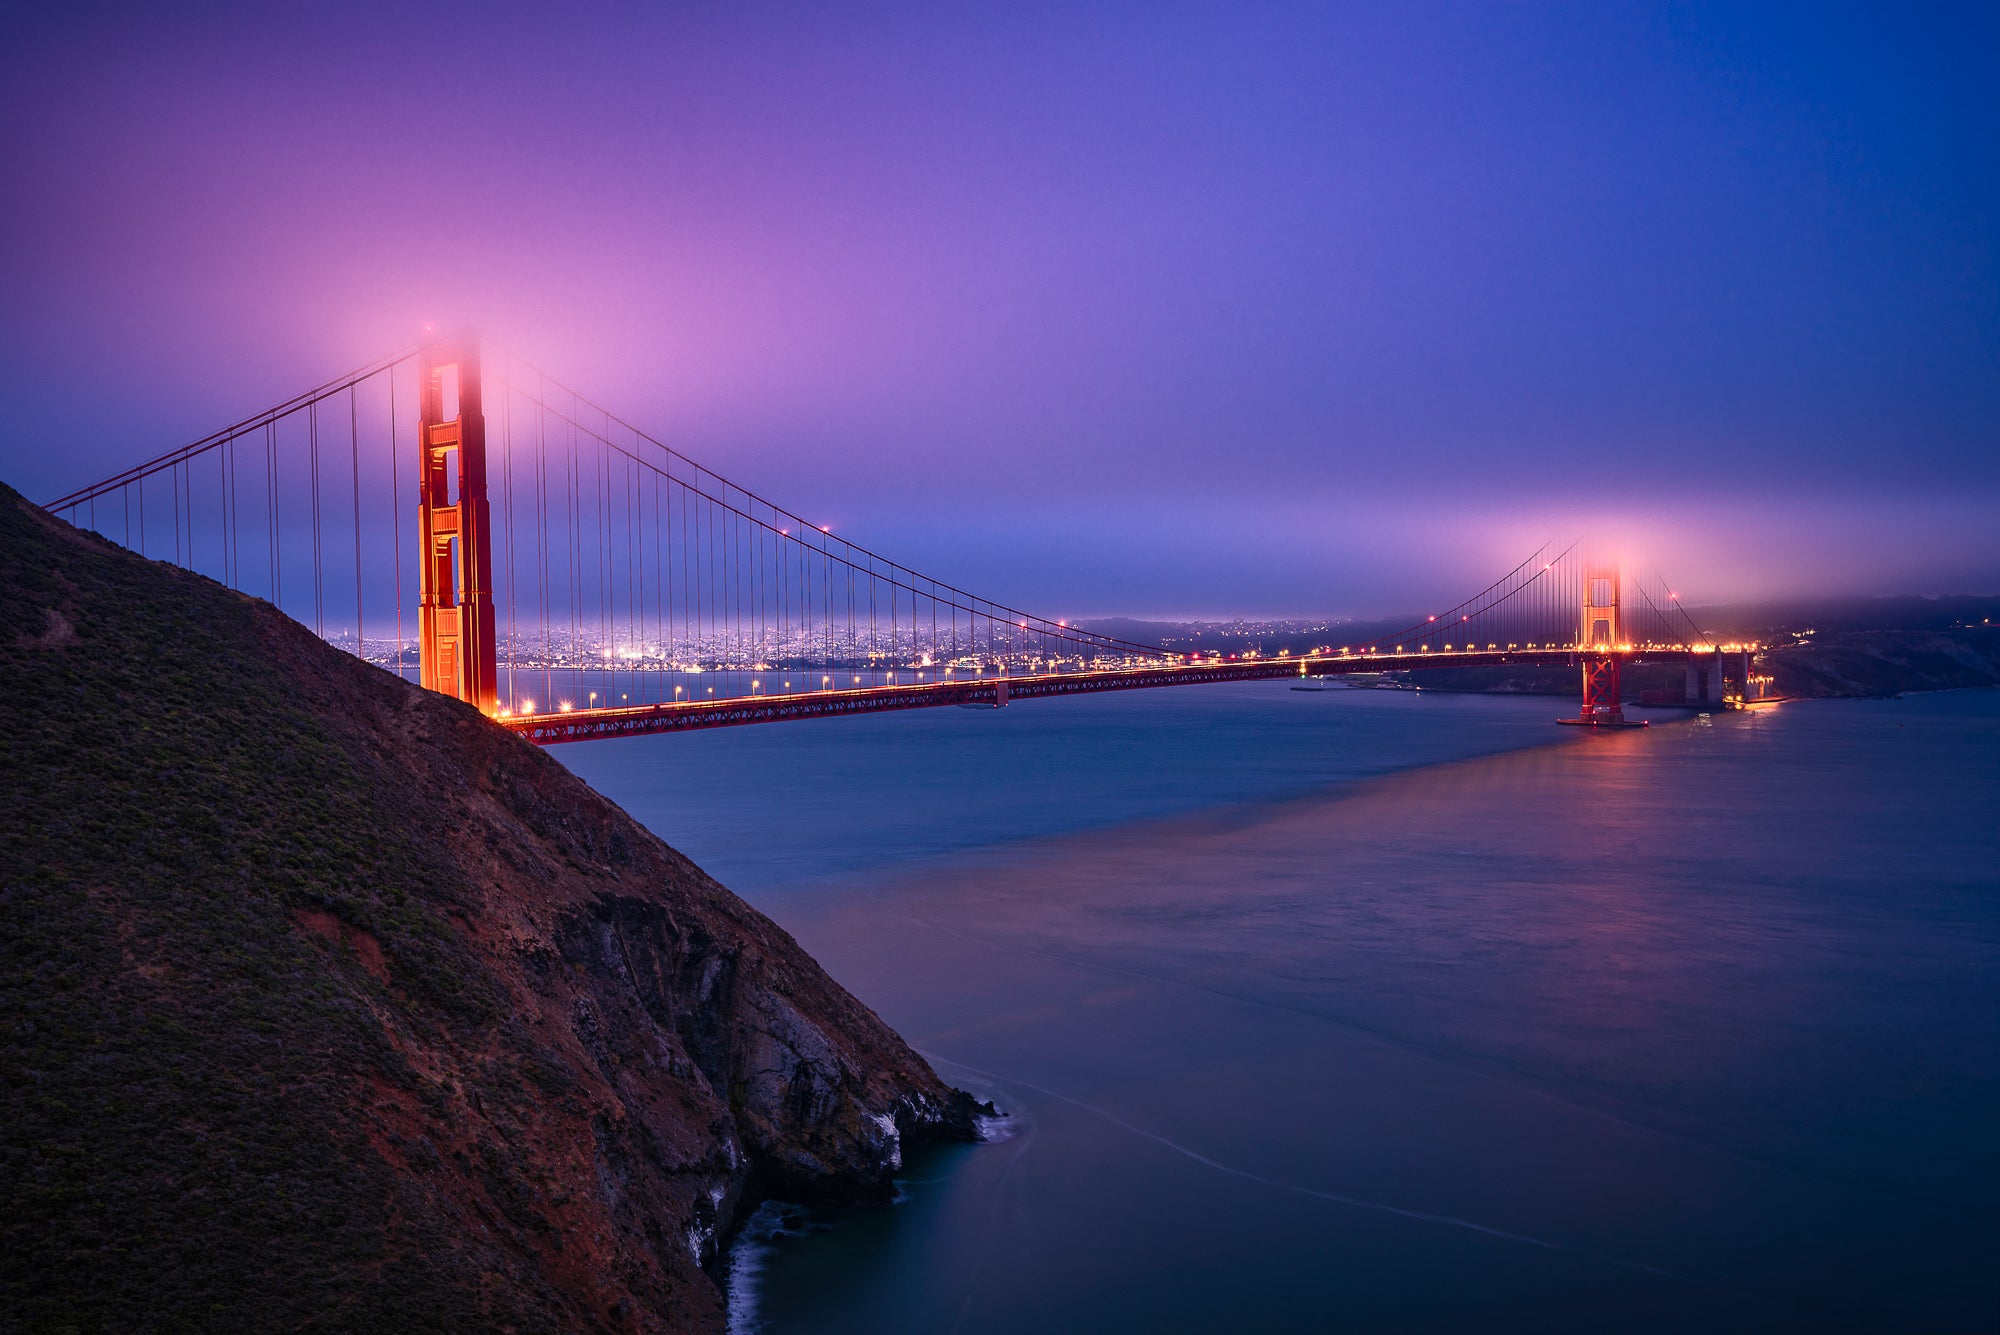 Golden-Gate-Bridge-San-Francisco-Nightscape-USA-Mark-Hannah-Photography